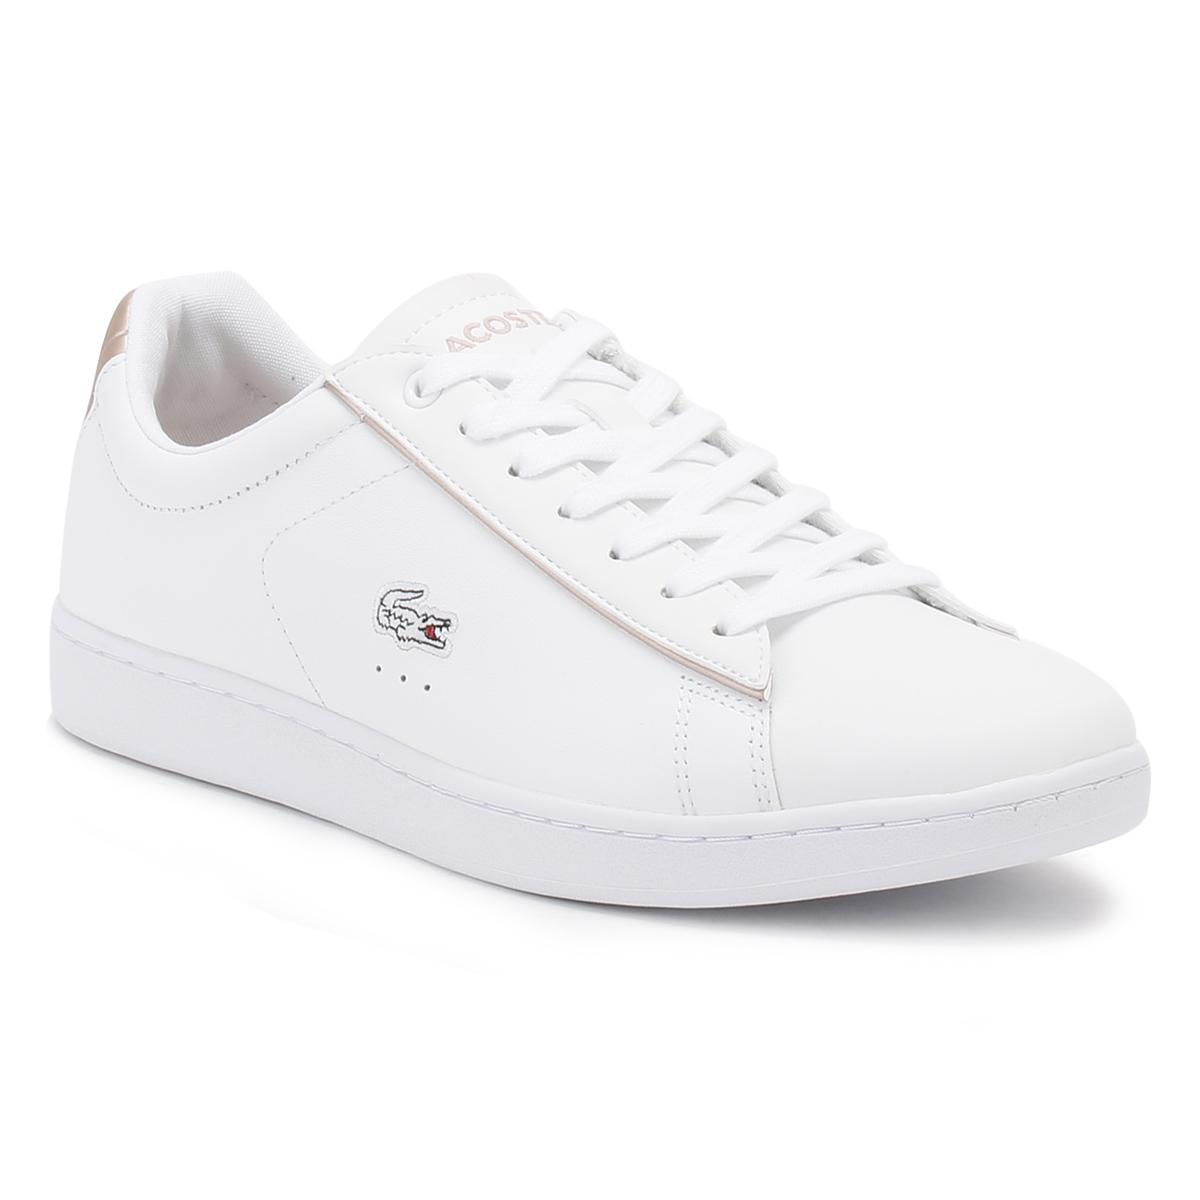 8c1fdd9333c408 Lacoste Womens White/light Pink Carnaby Evo 217 2 Spw Trainers in ...